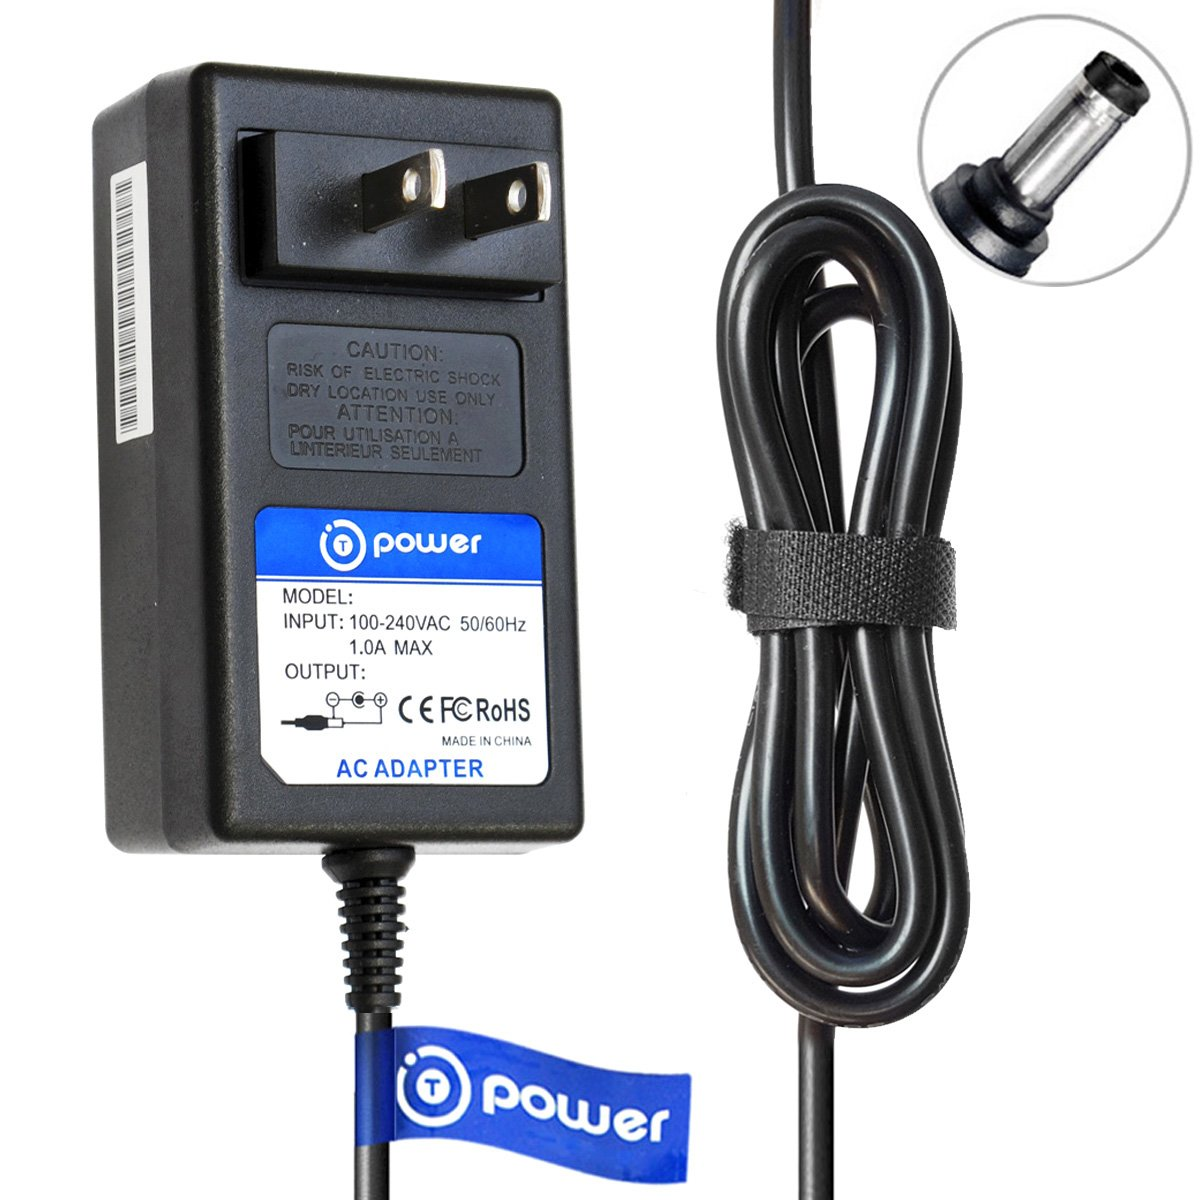 T-Power (TM) (6.6ft Long Cable) AC/DC AC Adapter for Yamaha PSR170 PSR-275 PSR-260 PSR260 P/N: PSR170 PSR-275 PSR-260 PSR260 Electronic Digital Piano Midi Keyboard Spare Charger Power Plug Cord